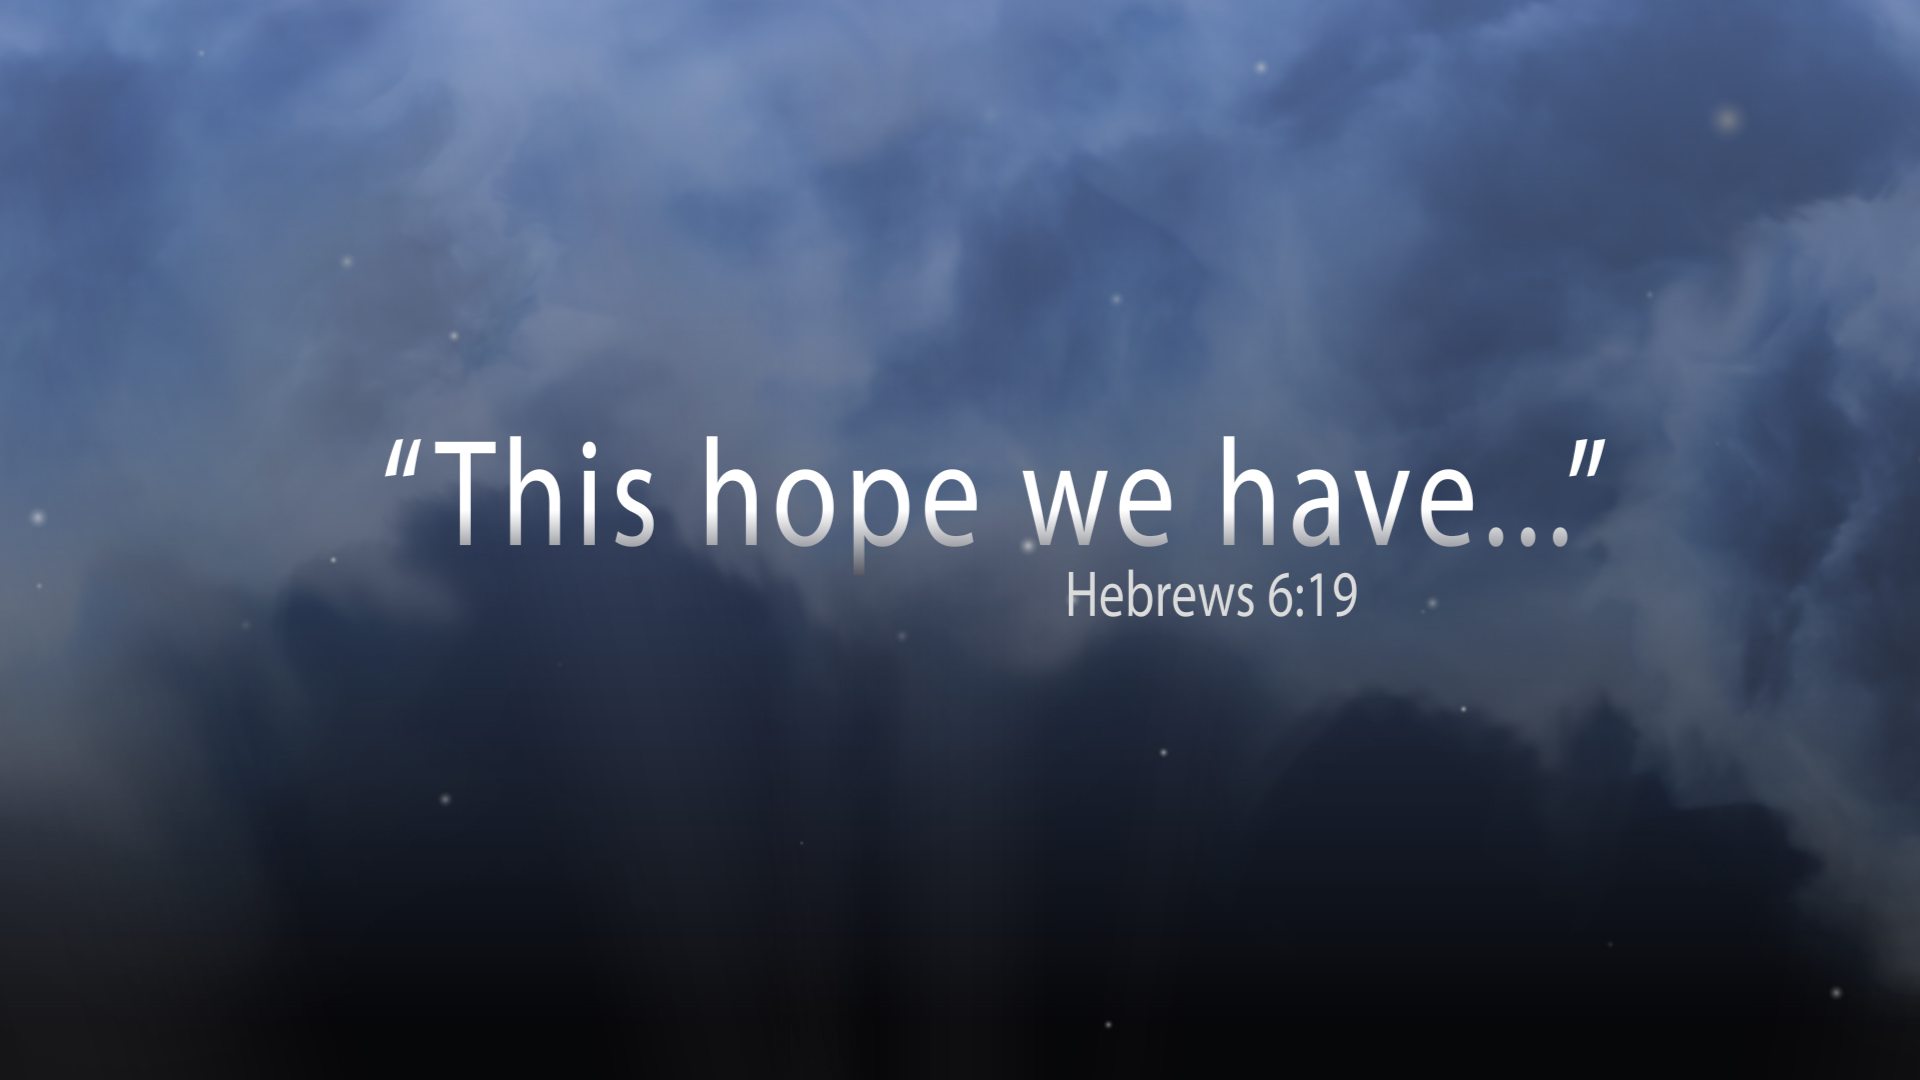 This hope we have